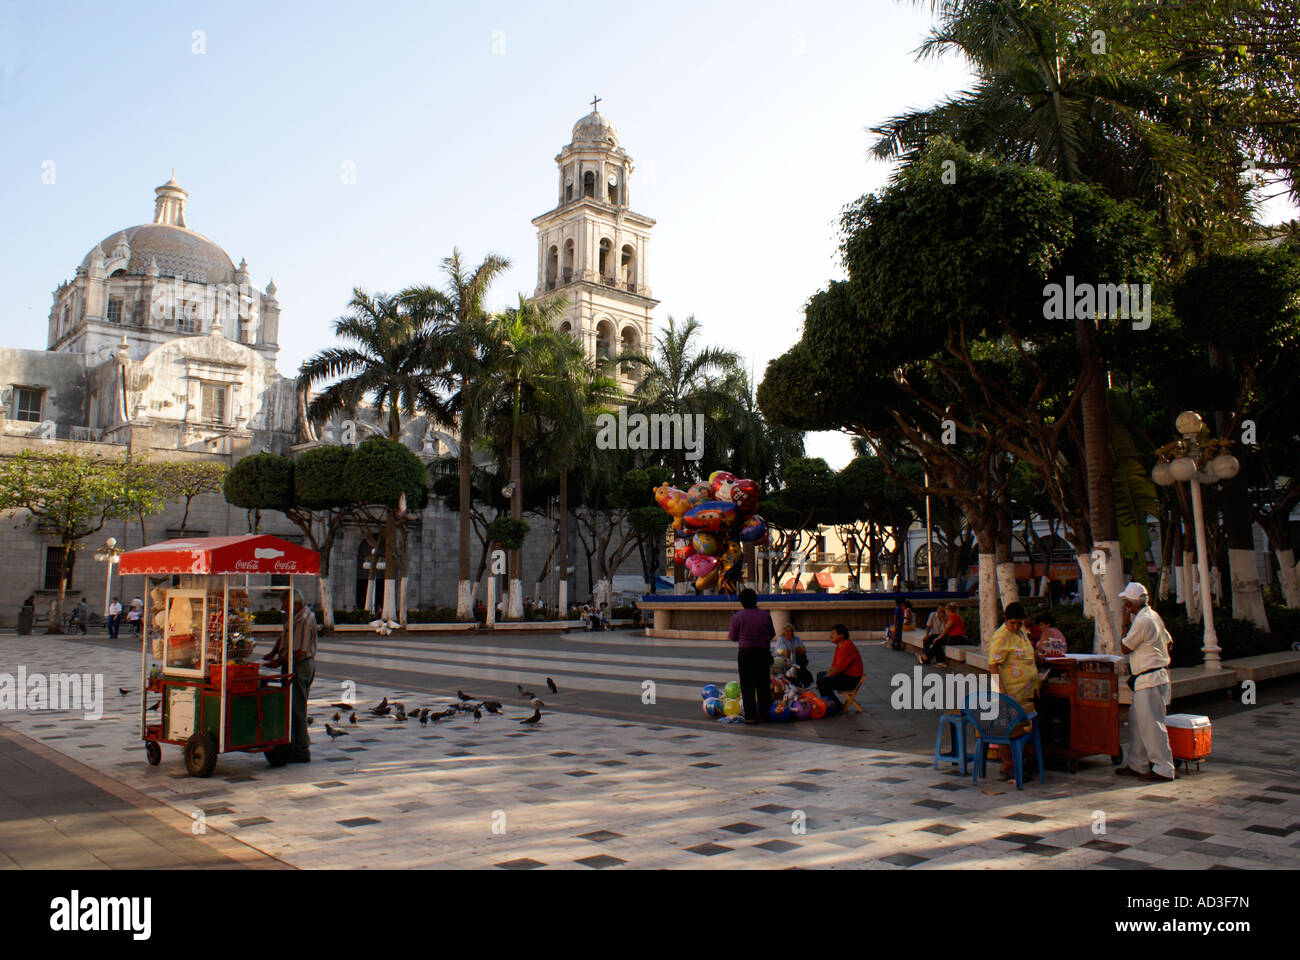 plaza-de-armas-main-square-in-the-city-o